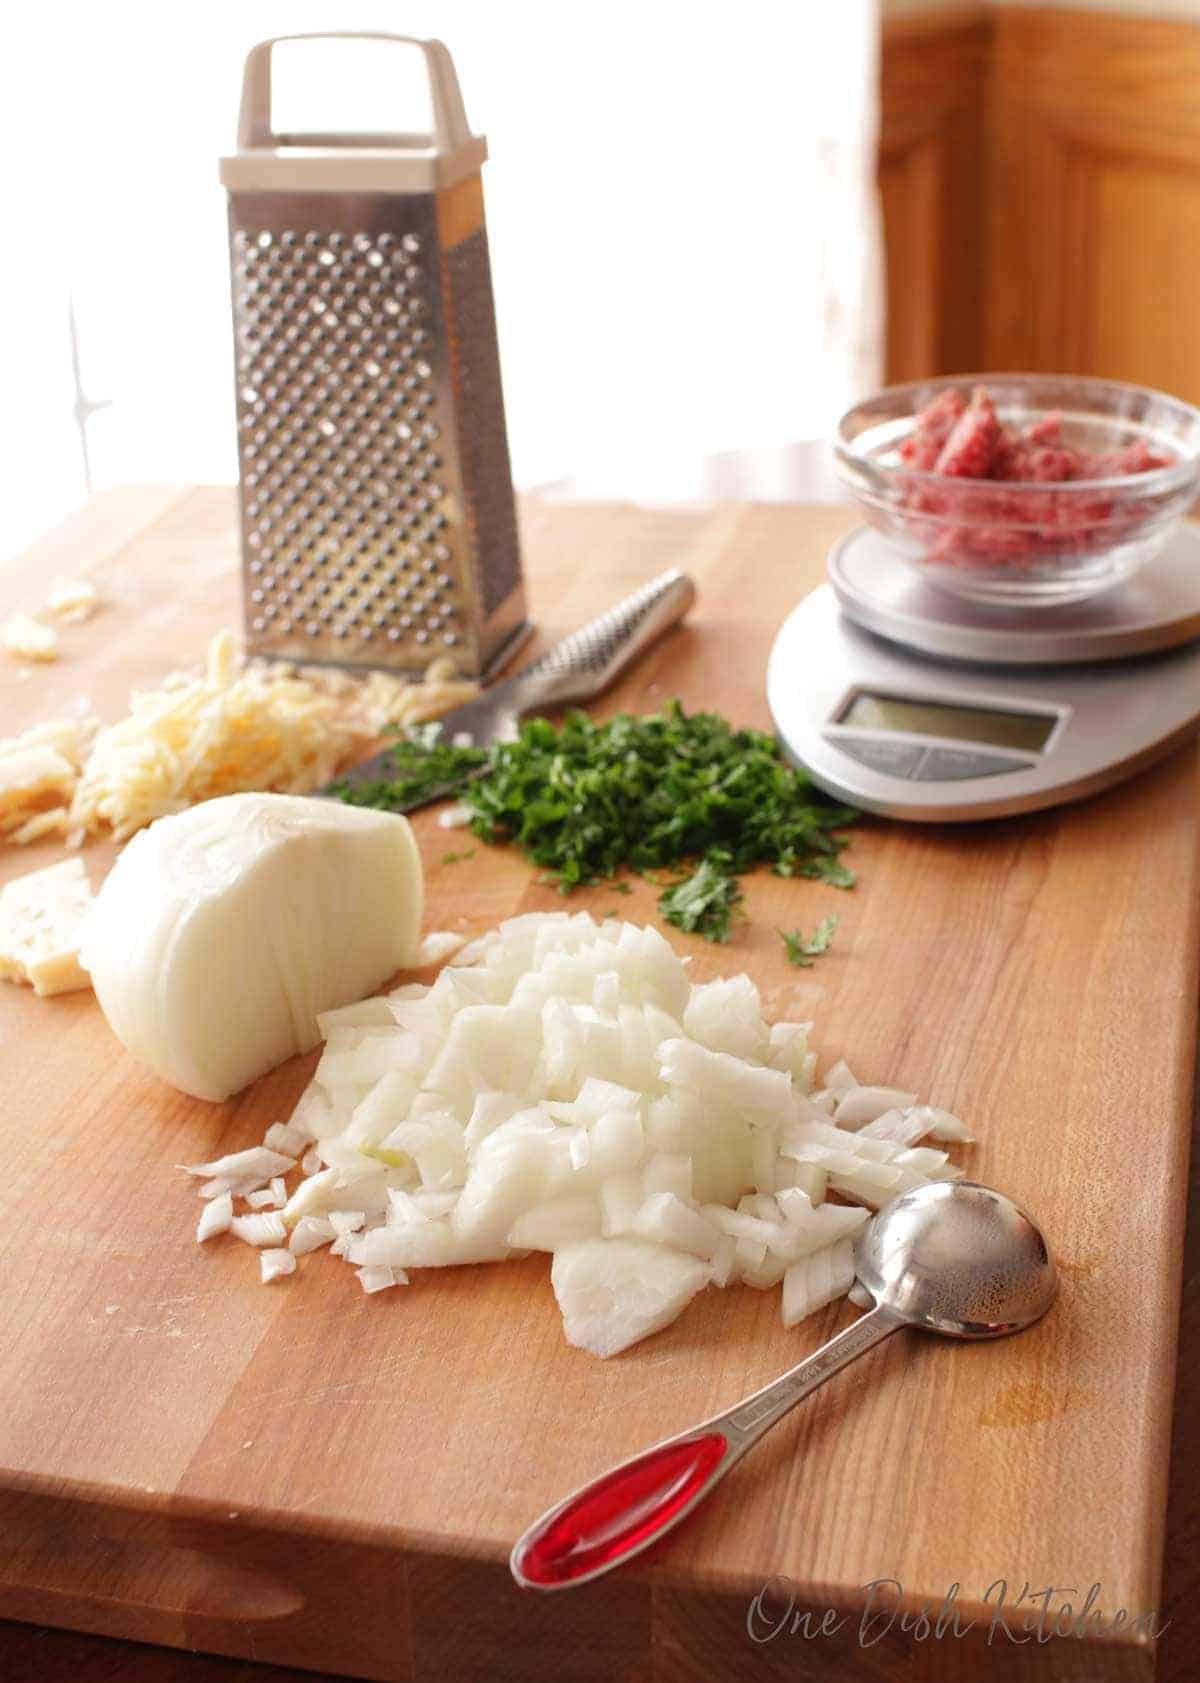 Ingredients for making a meatball on a wooden cutting board- chopped onions, chopped parsley, grated parmesan cheese, and ground beef on a scale